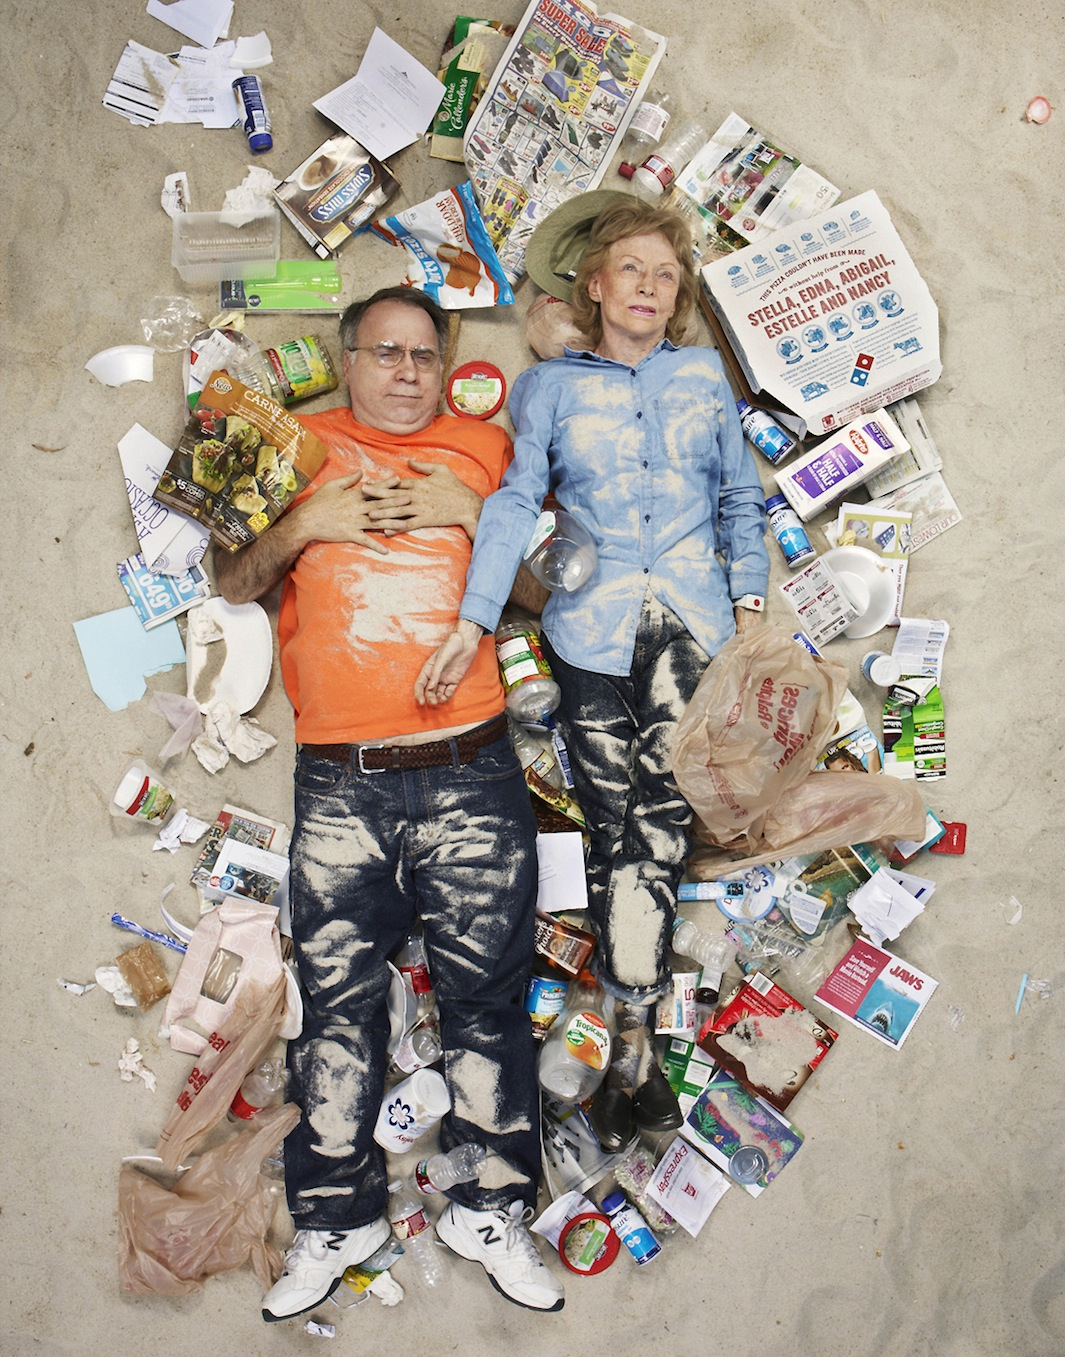 ©Gregg Segal - 7 Days of Garbage. Fotografía | Photography